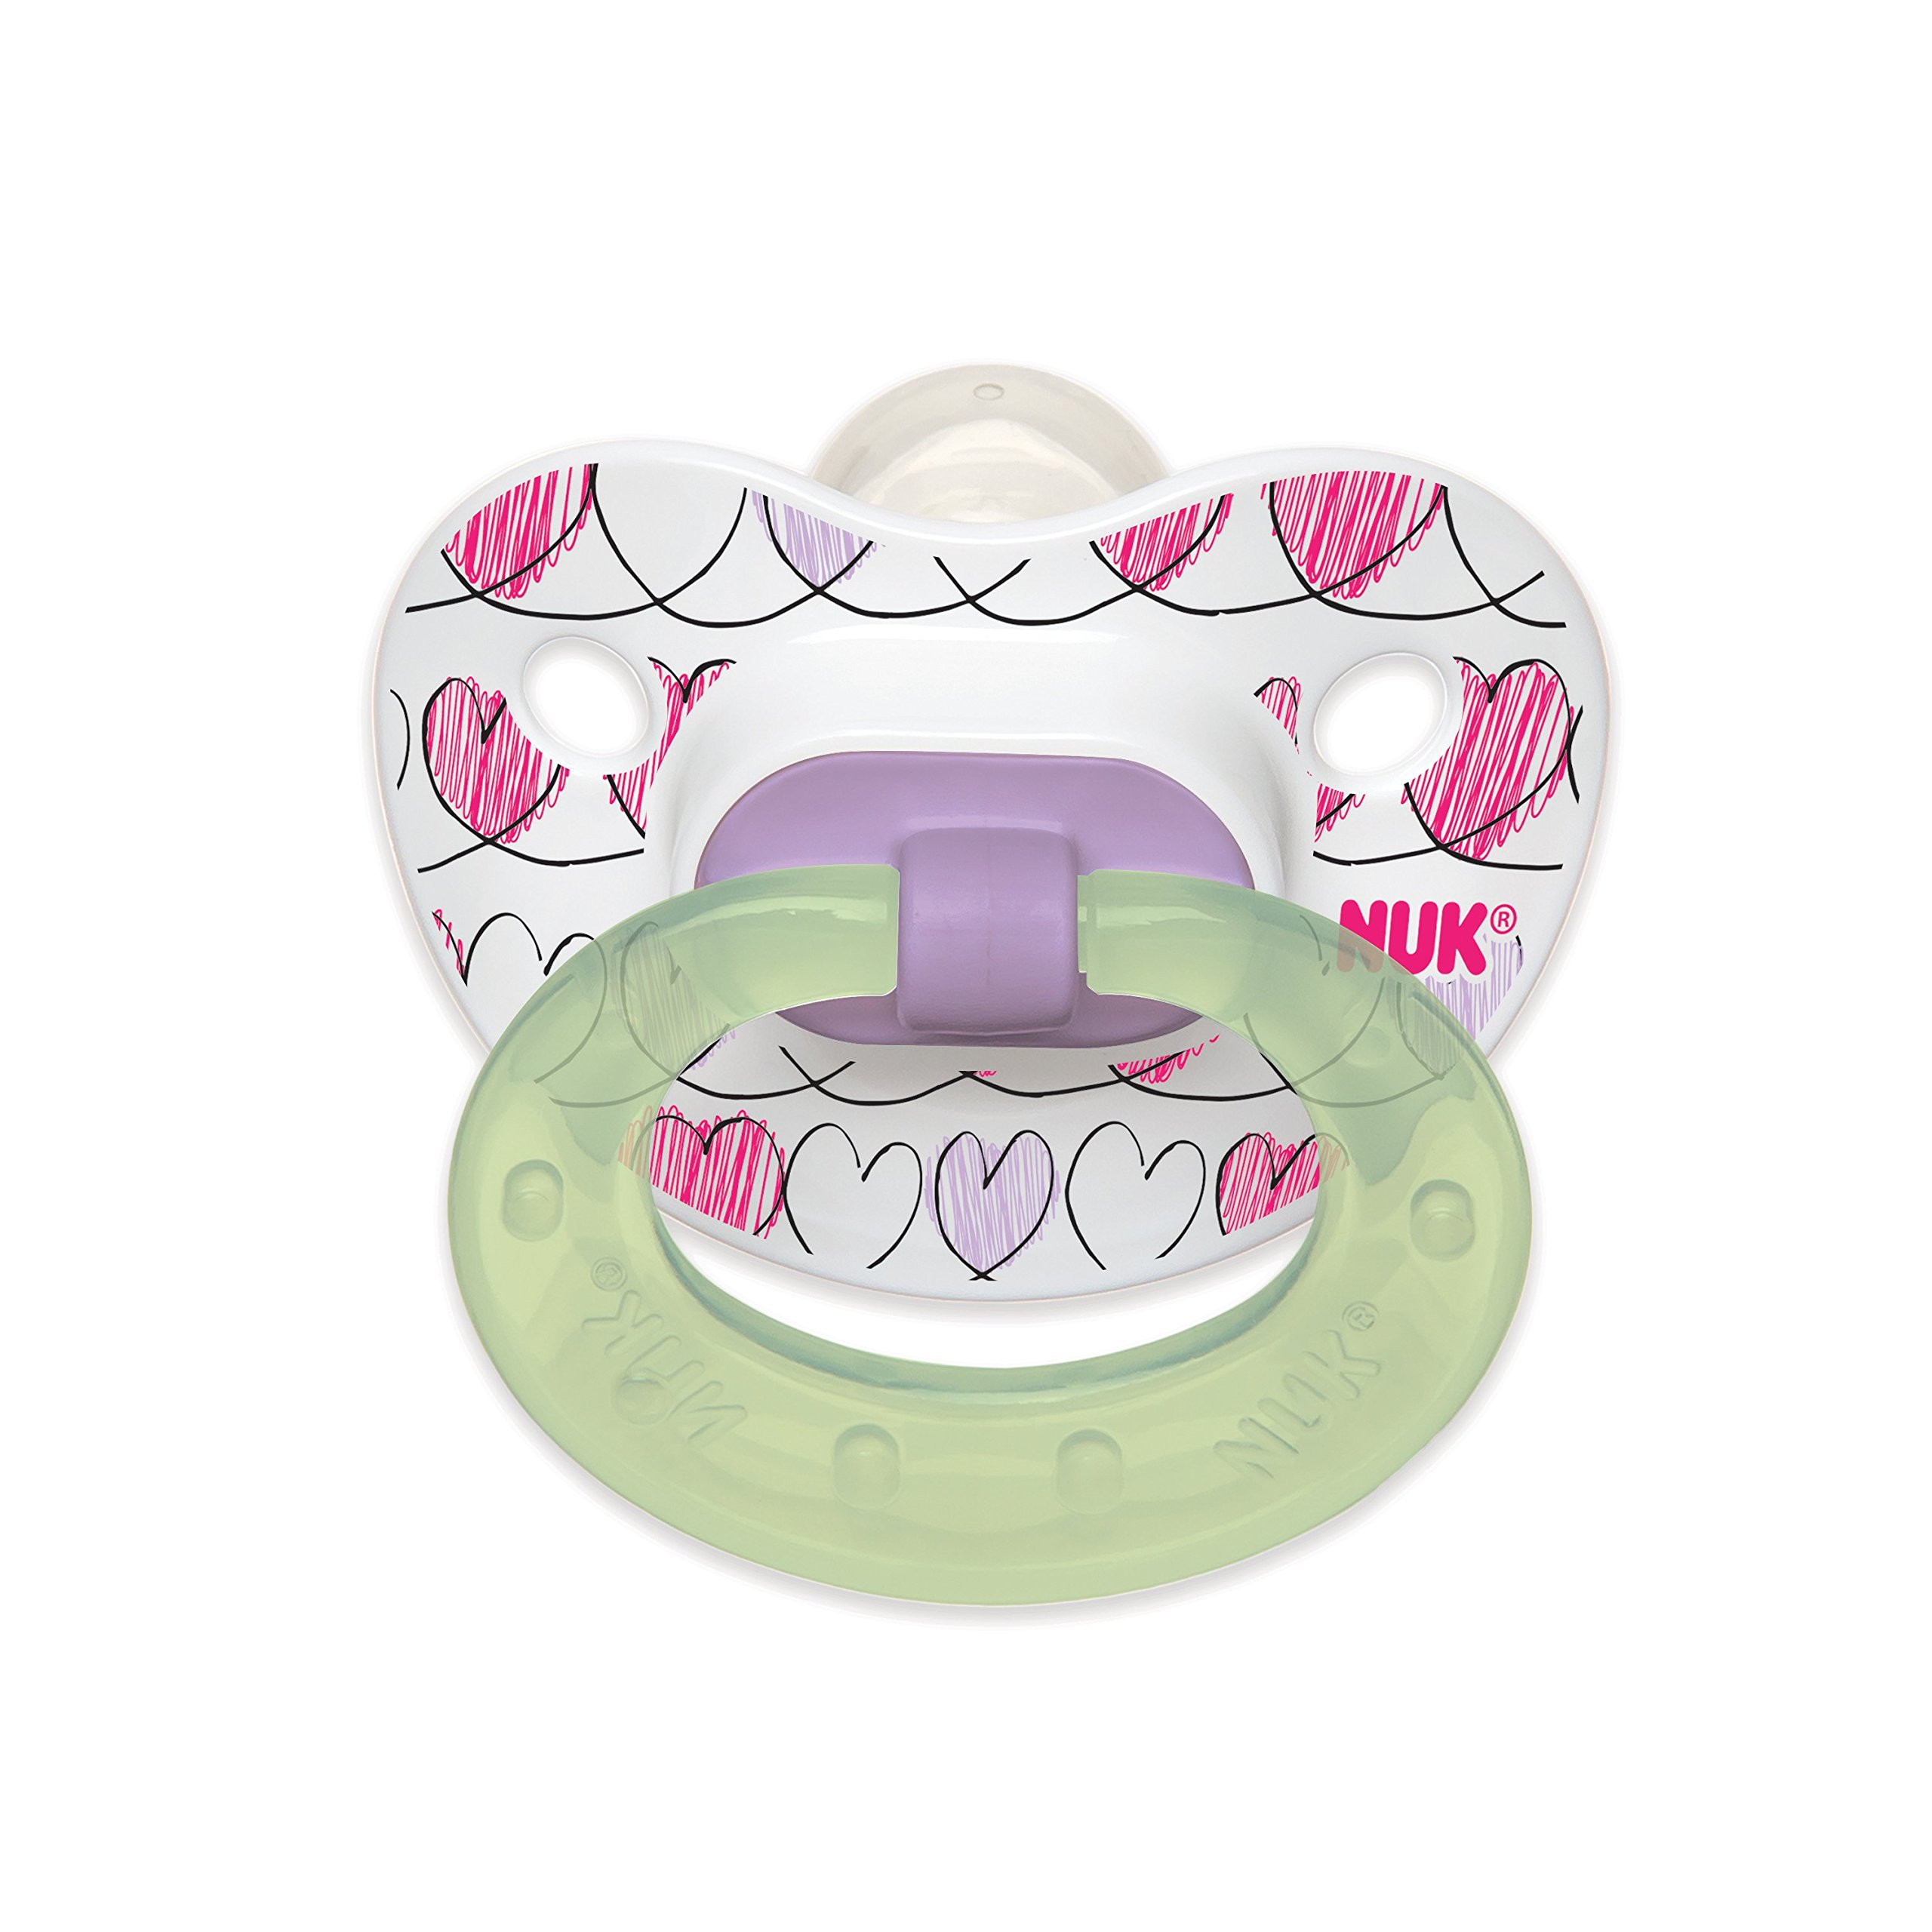 Amazon.com : 4 NUK Binky Air Shield Orthodontic Pacifier ...